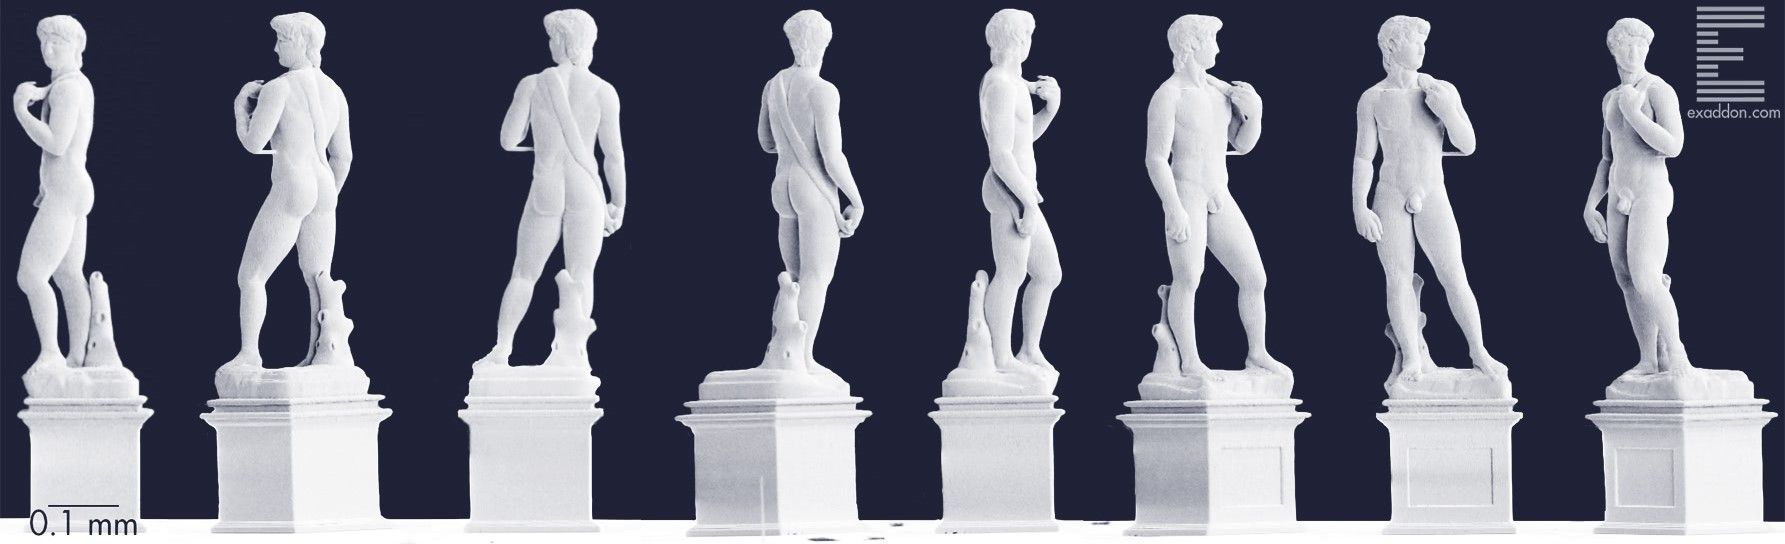 Multiple views of Michelangelo's David 3D printed in microscale, produced by Exaddon